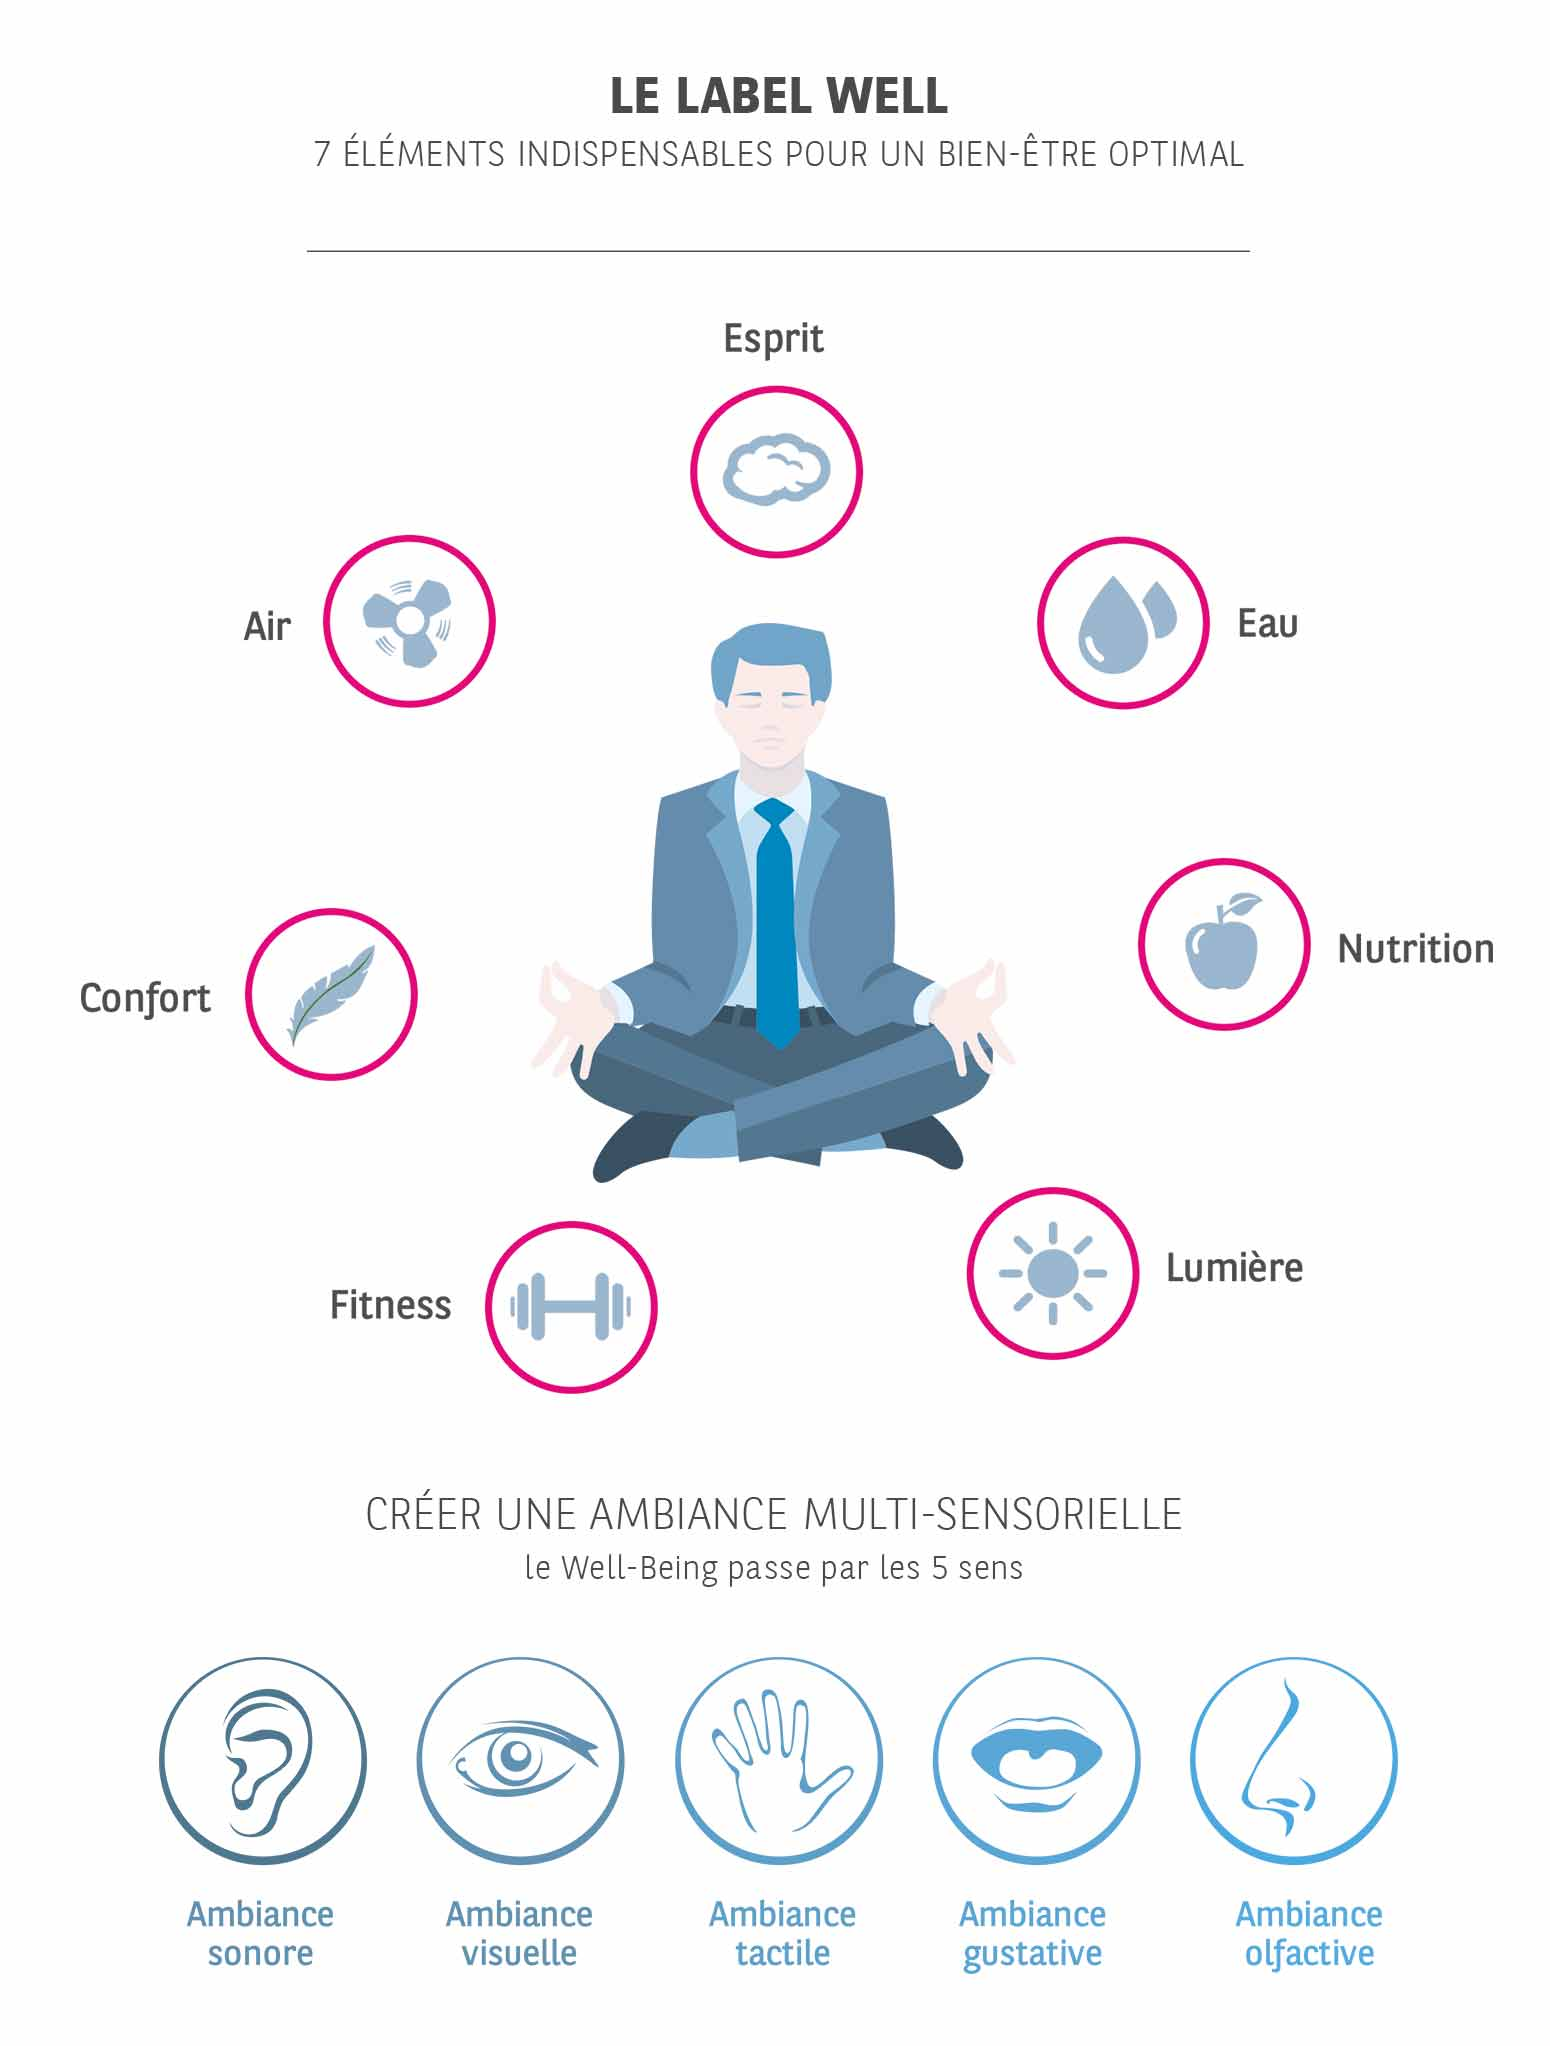 BNPPREPM Services Performance environnementale Certification environnementale Infographie Well Being